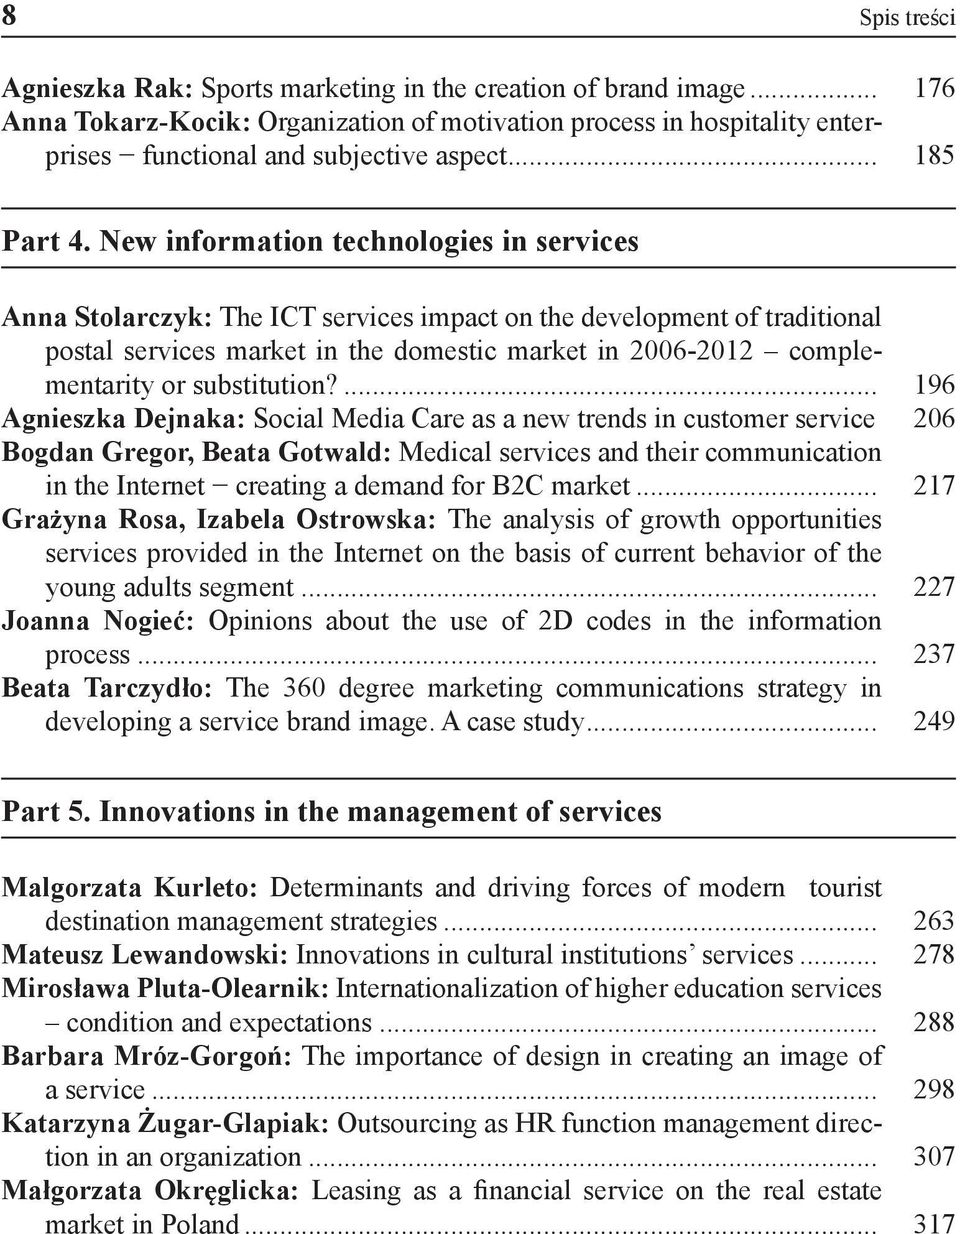 New information technologies in services Anna Stolarczyk: The ICT services impact on the development of traditional postal services market in the domestic market in 2006-2012 complementarity or